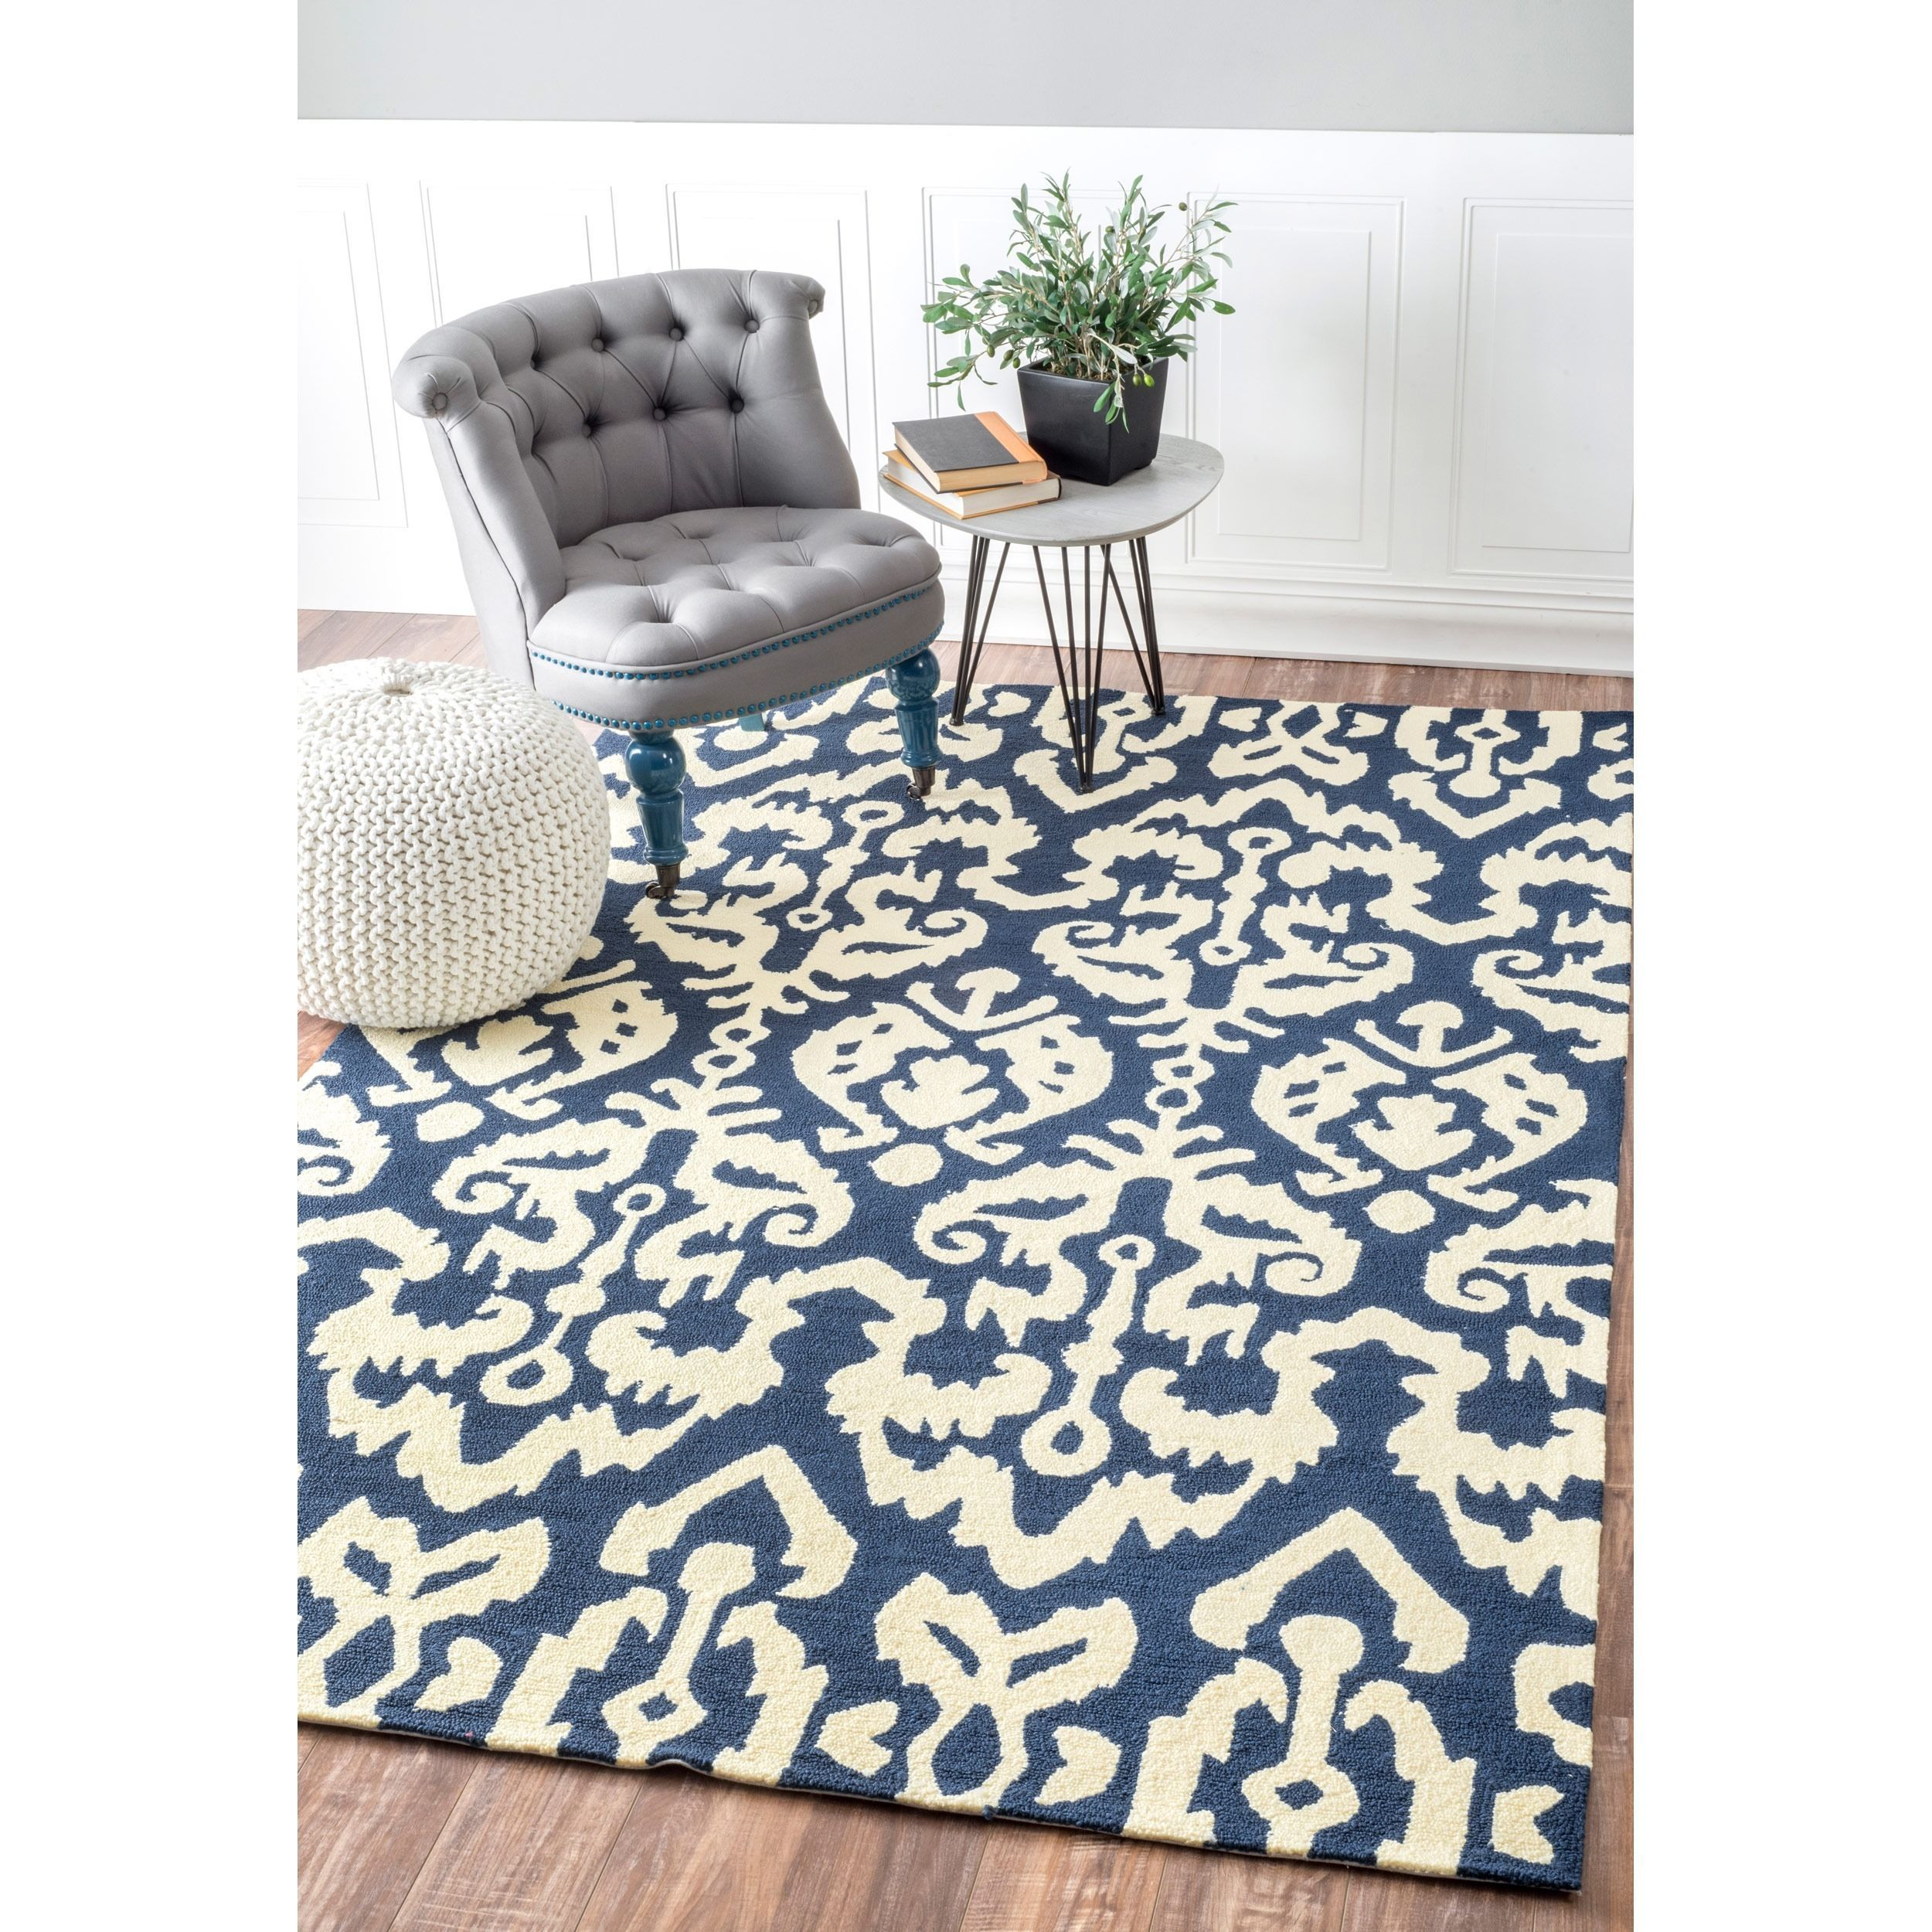 en flatwoven pleksi textiles medium xali xamili large stockholm rugs and rug fancy ikea